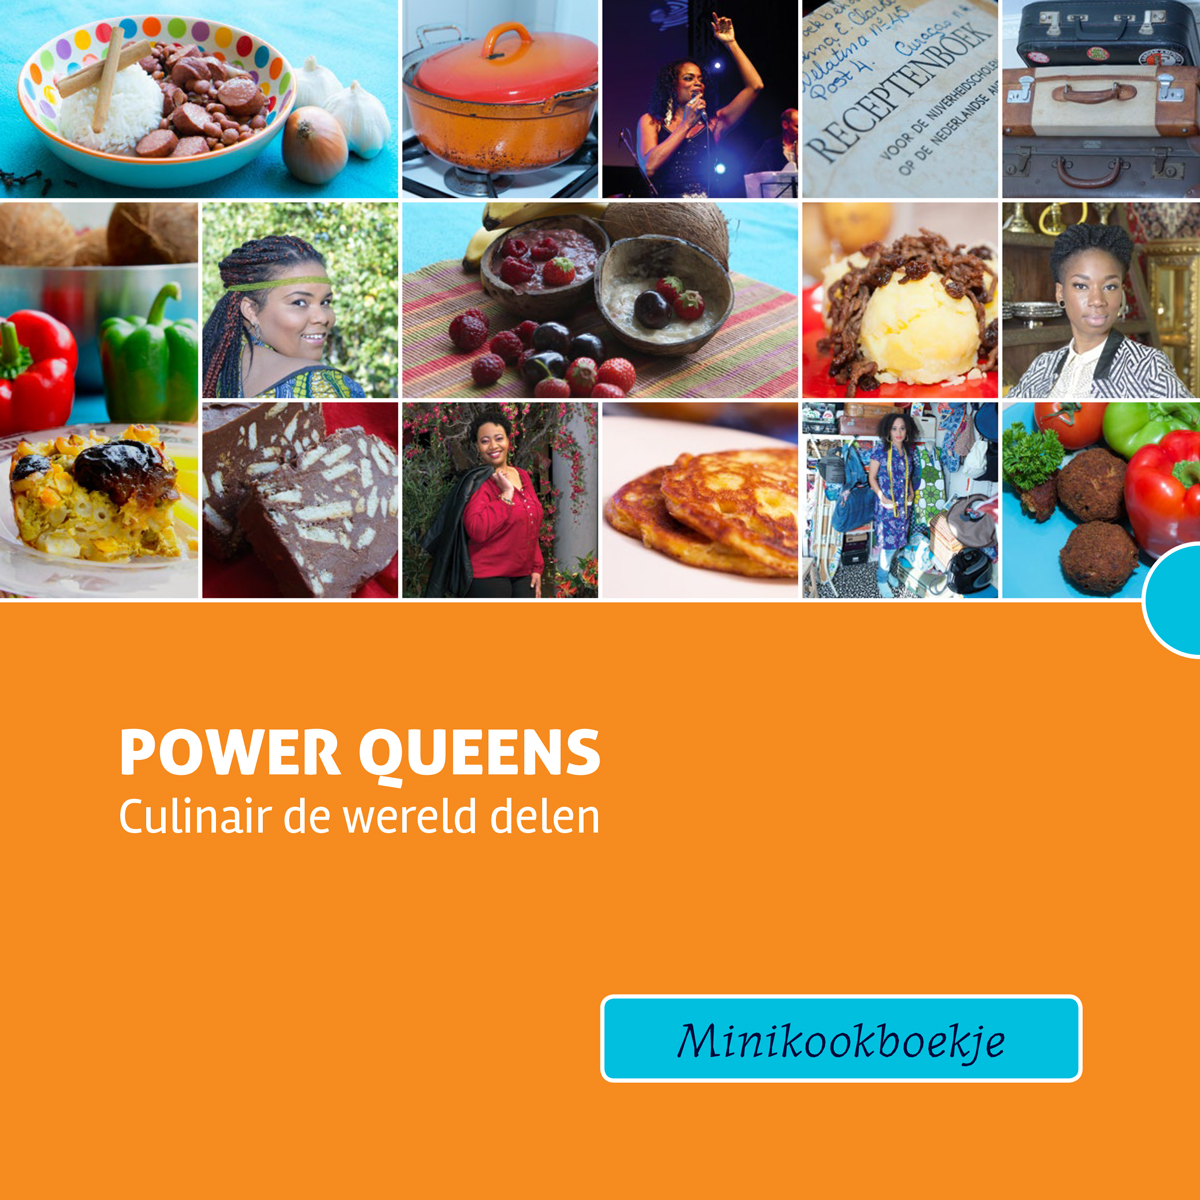 Power Queens minikookboekPower Queens minikookboek